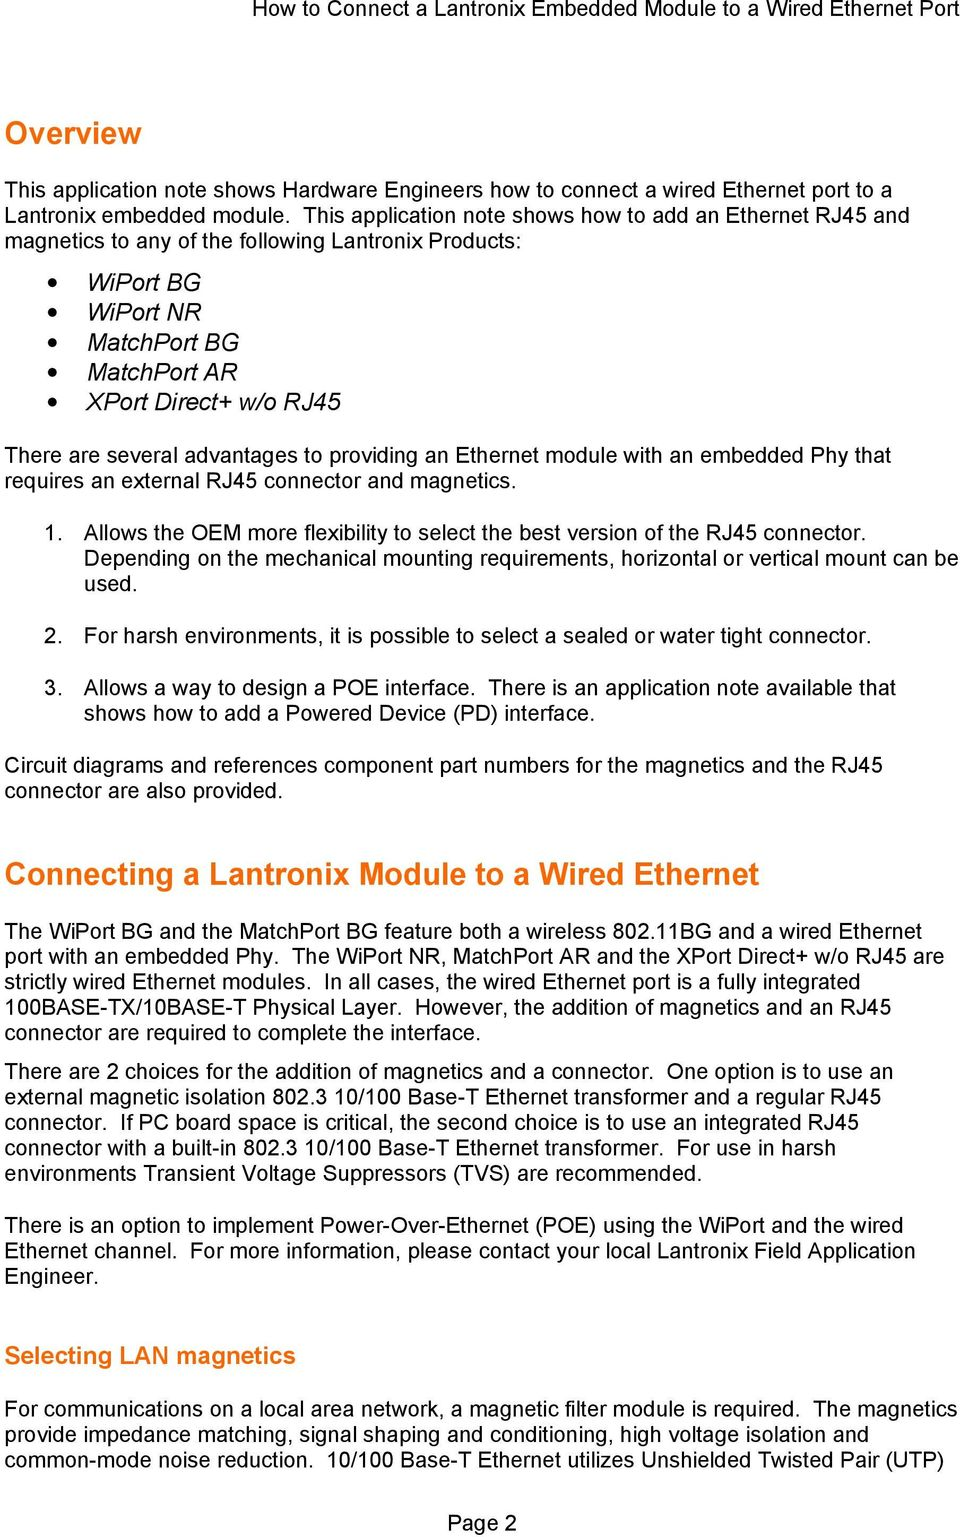 Application Note How To Connect A Lantronix Embedded Module 100 Mbps Rj45 Wiring Diagram Advantages Providing An Ethernet With Phy That Requires External Connector